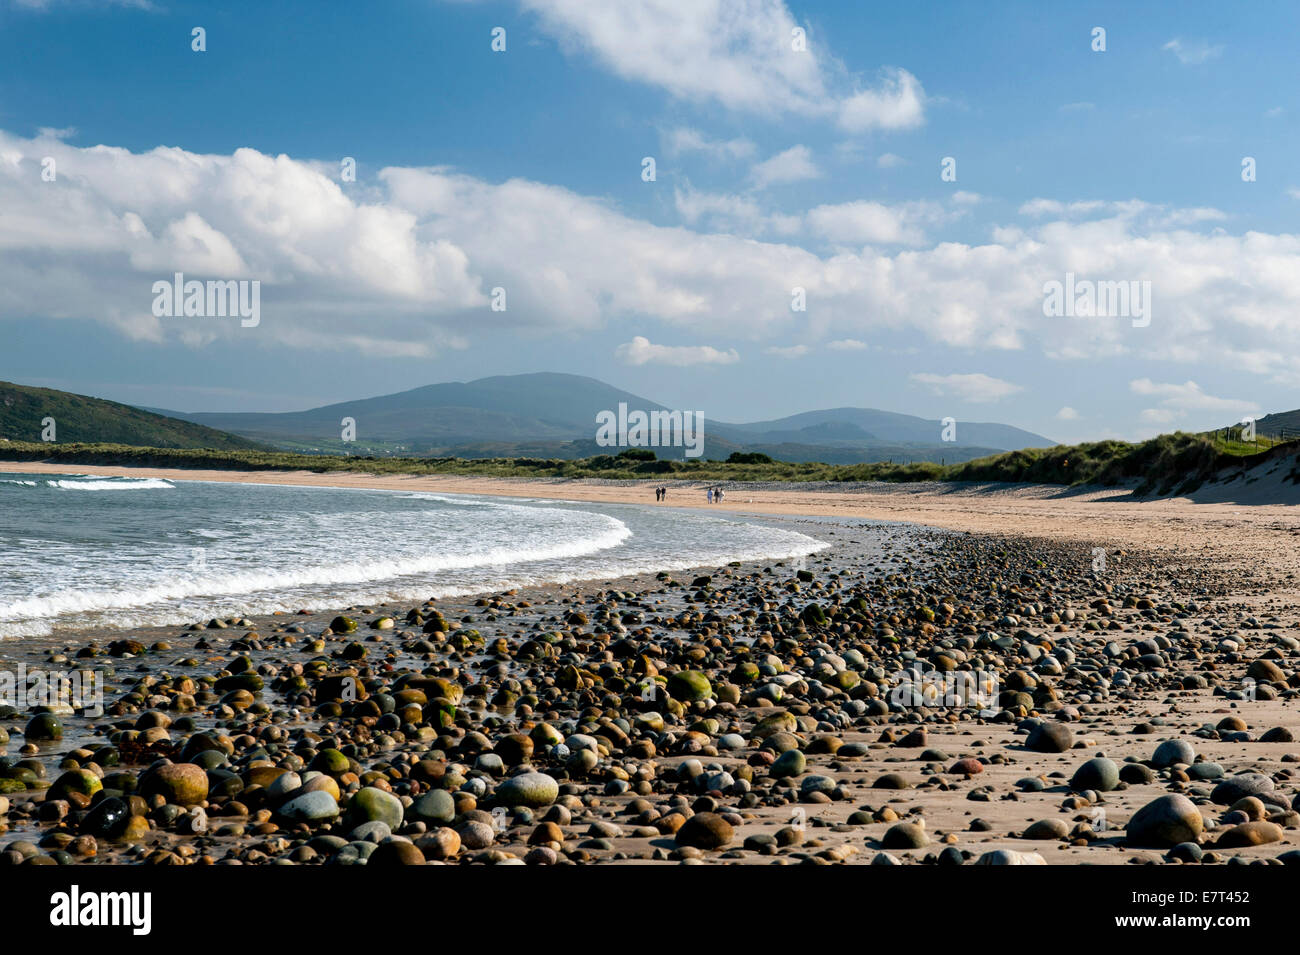 Tullagh Bay beach,Clonmany, Inishowen, County Donegal, Ireland, - Stock Image